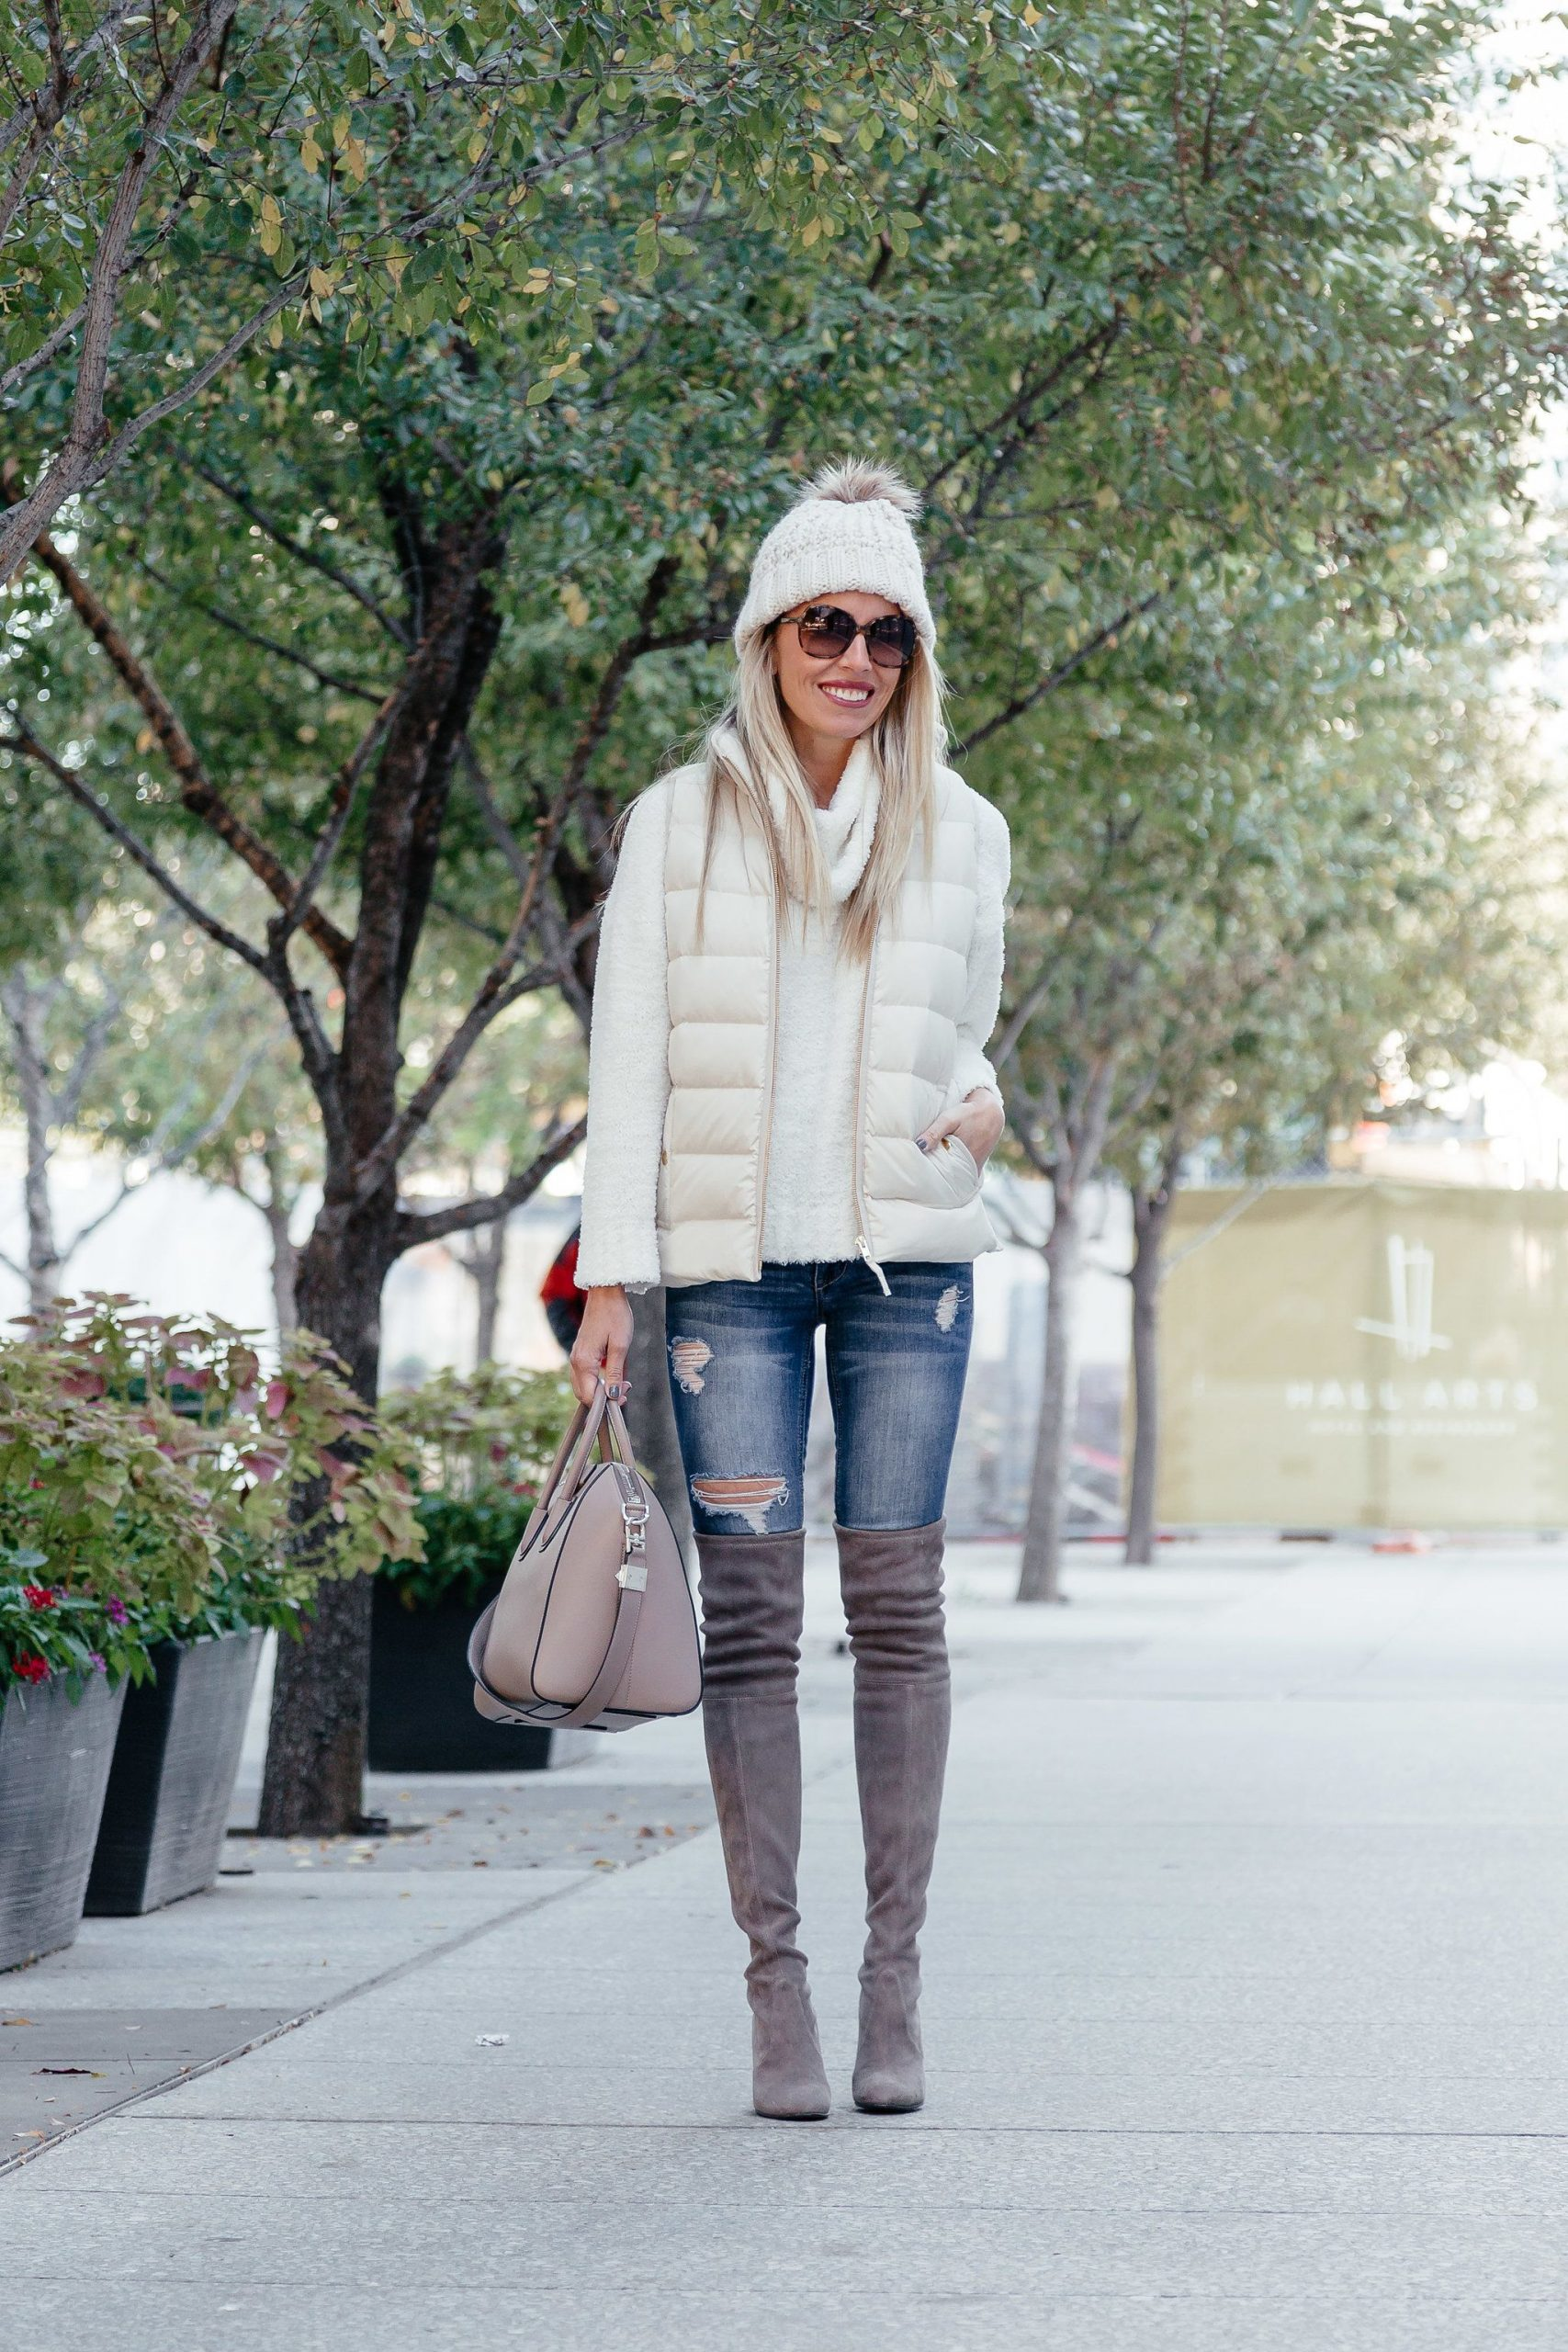 How To Style White Puffer Vest